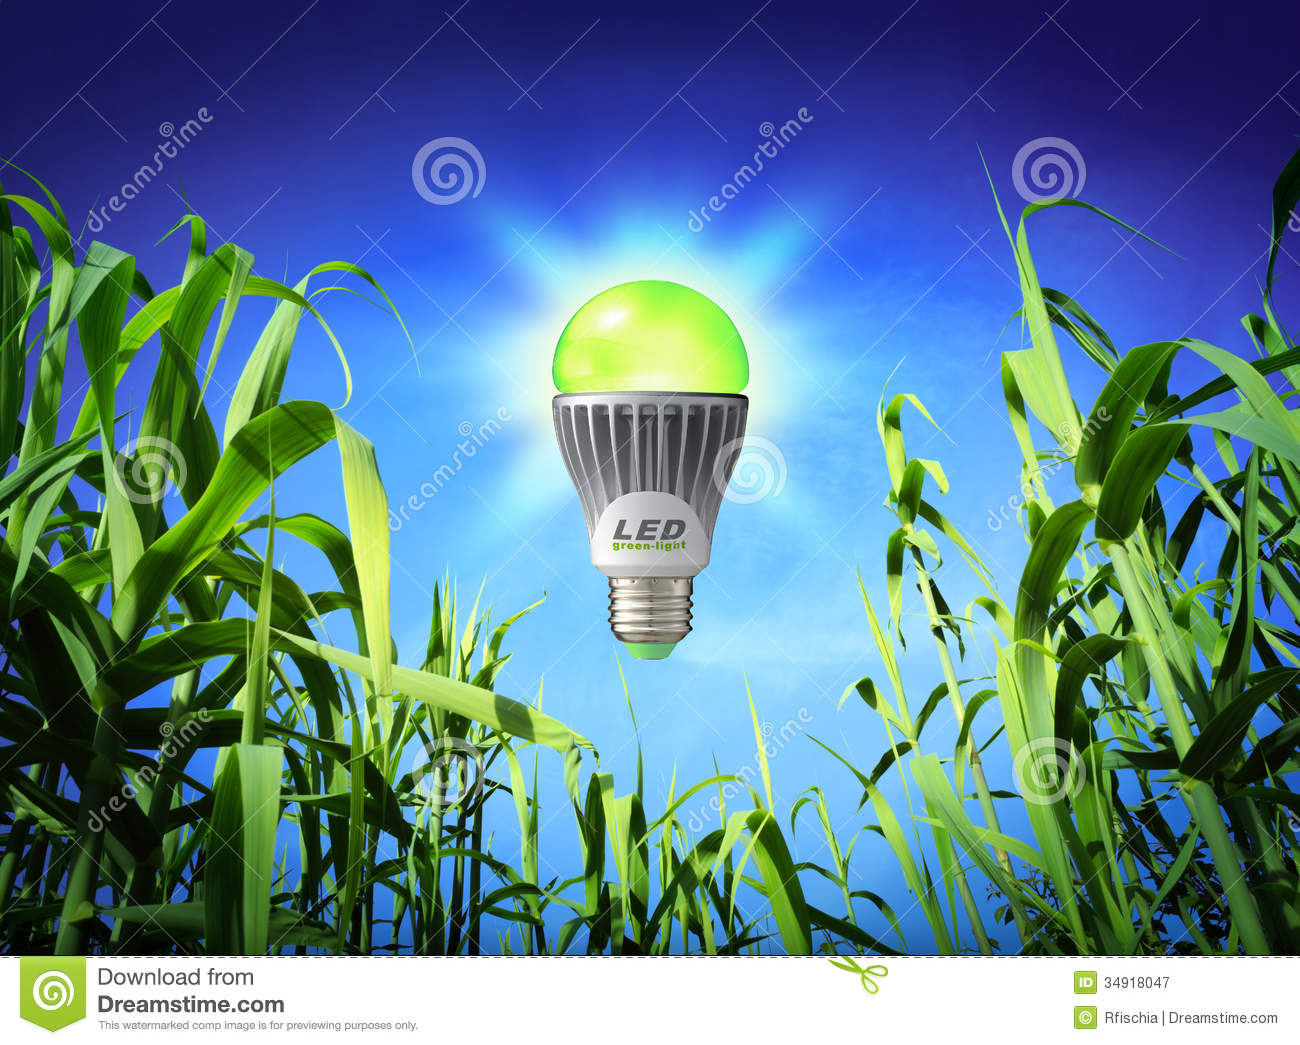 Lighting and Ecology